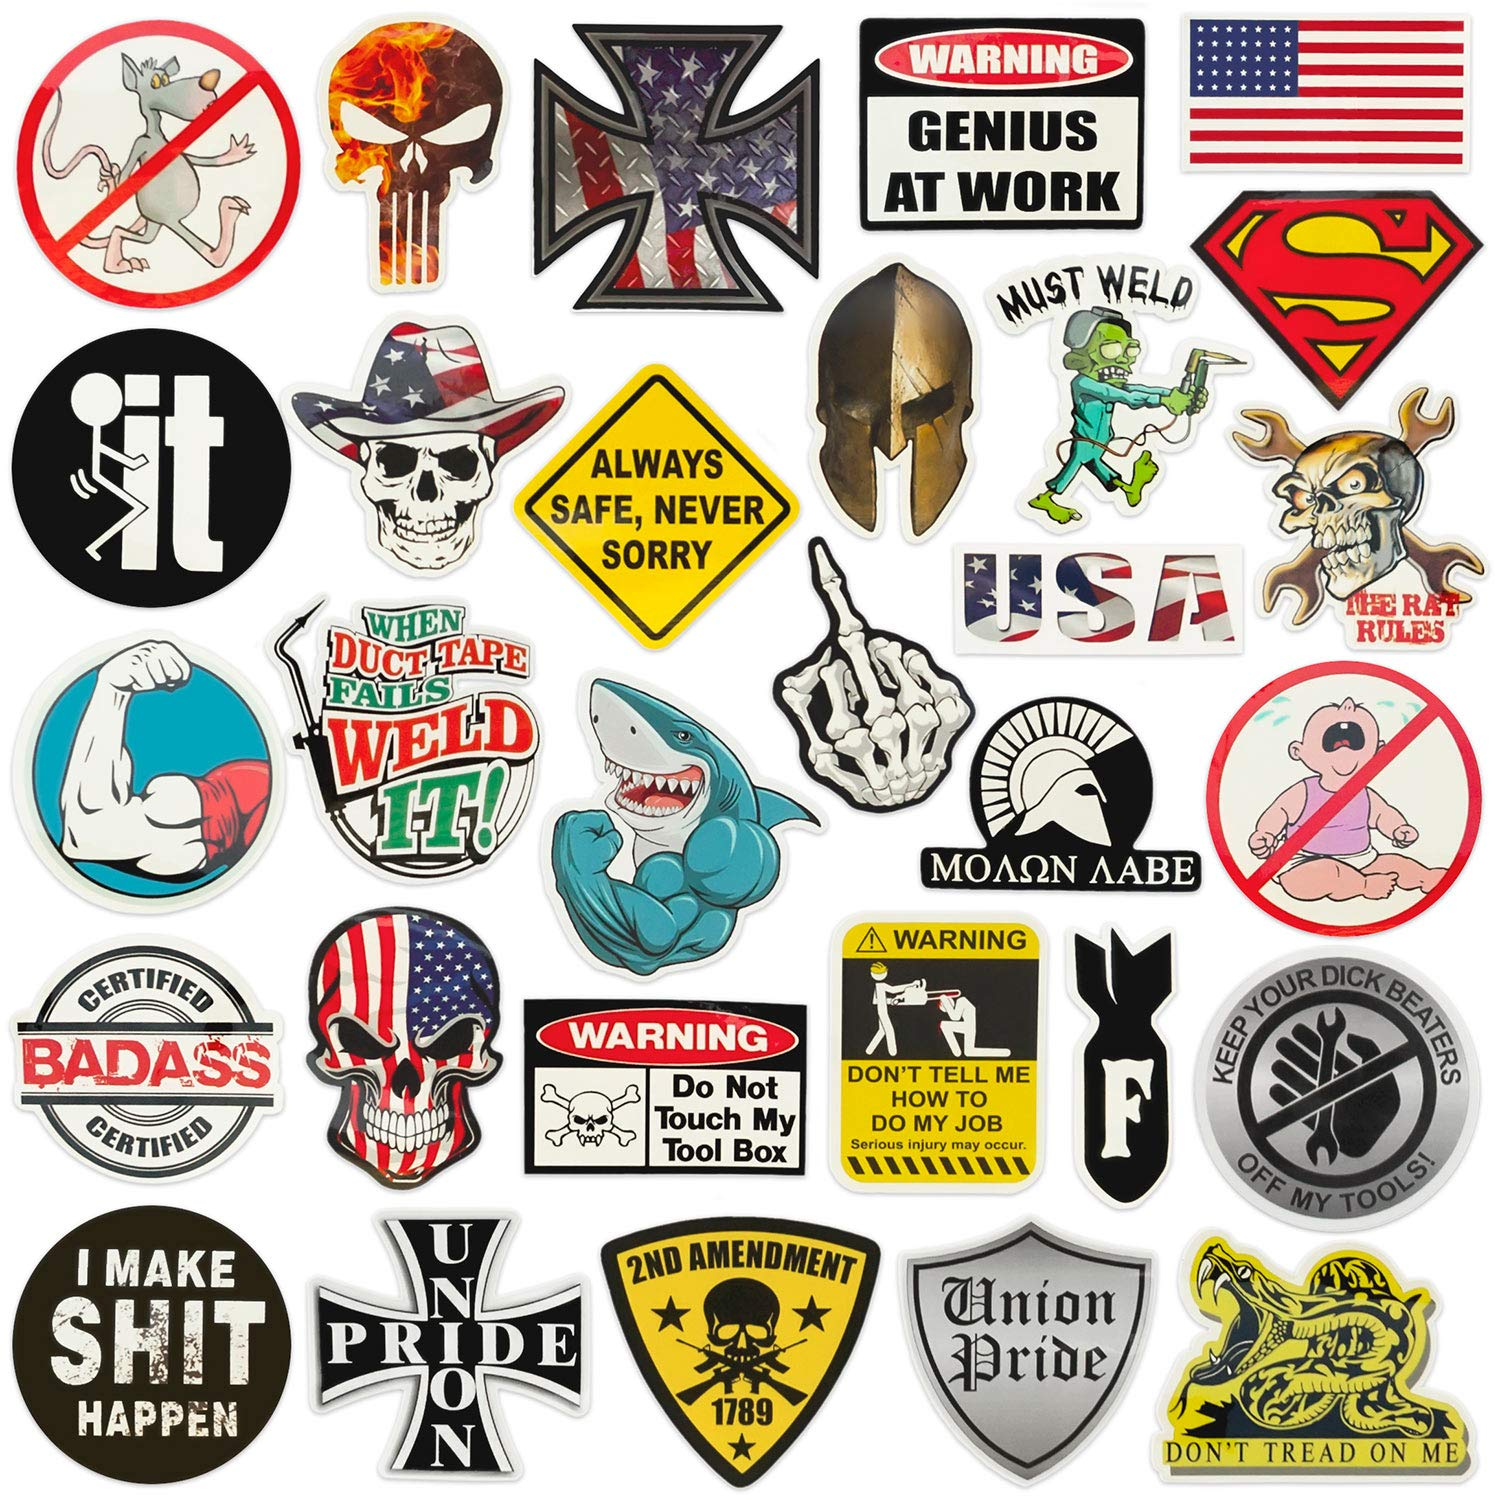 Hard hat Stickers |Big 30-Pack | Union American Patriotic Accessories for Helmet,Hardhat,Welding,Spartan,Construction,Molon Labe,Military,Ironworker,Lineman,Oilfield,Electrician,Pipeliner,Badass